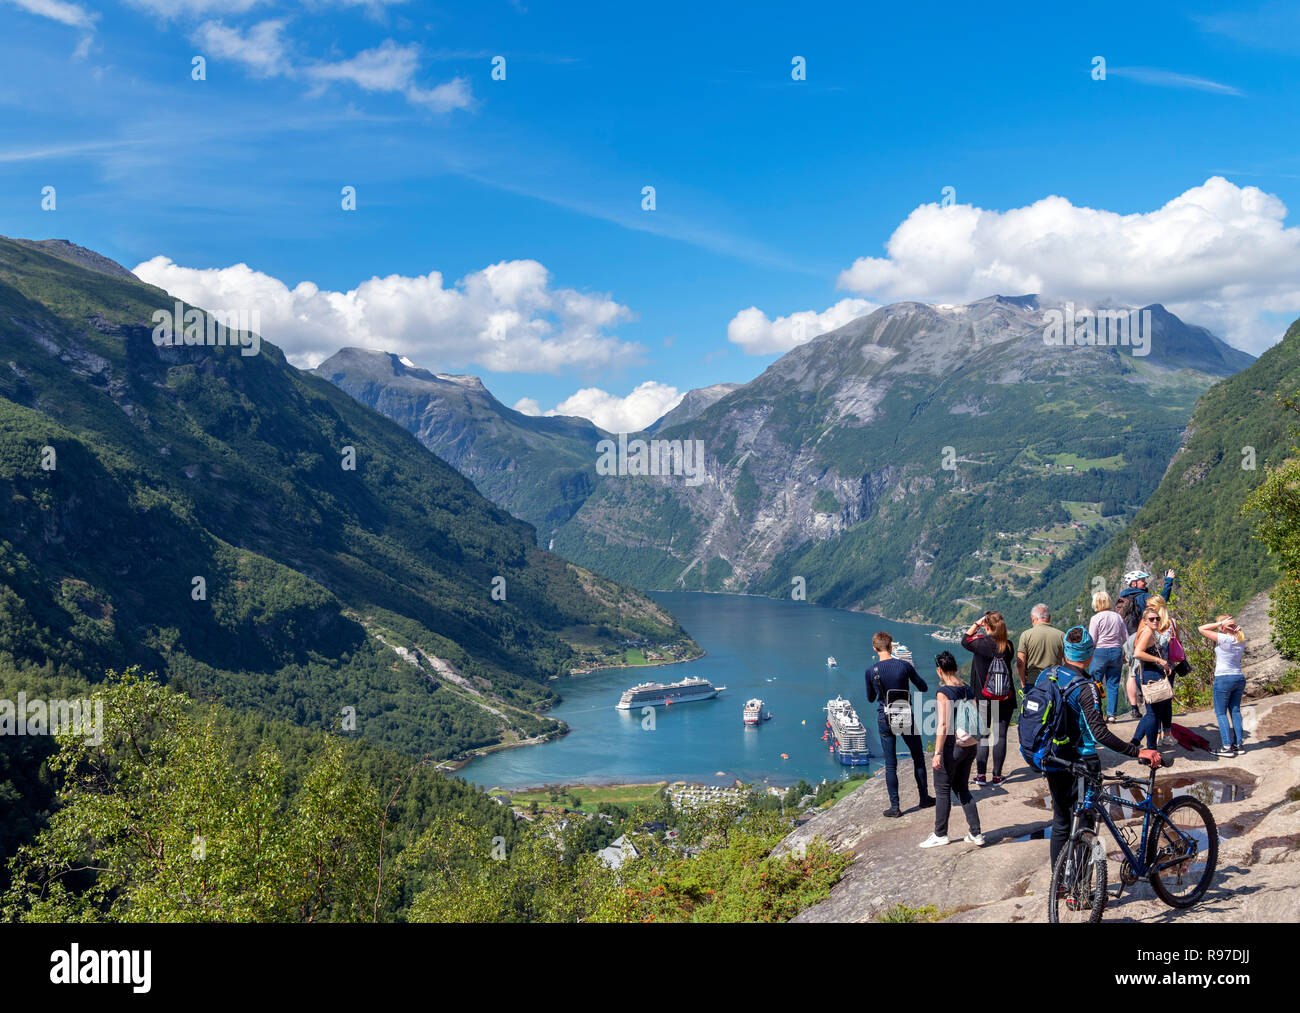 Tourists at the viewpoint overlooking the town of Geiranger and Geirangerfjord, Norway - Stock Image